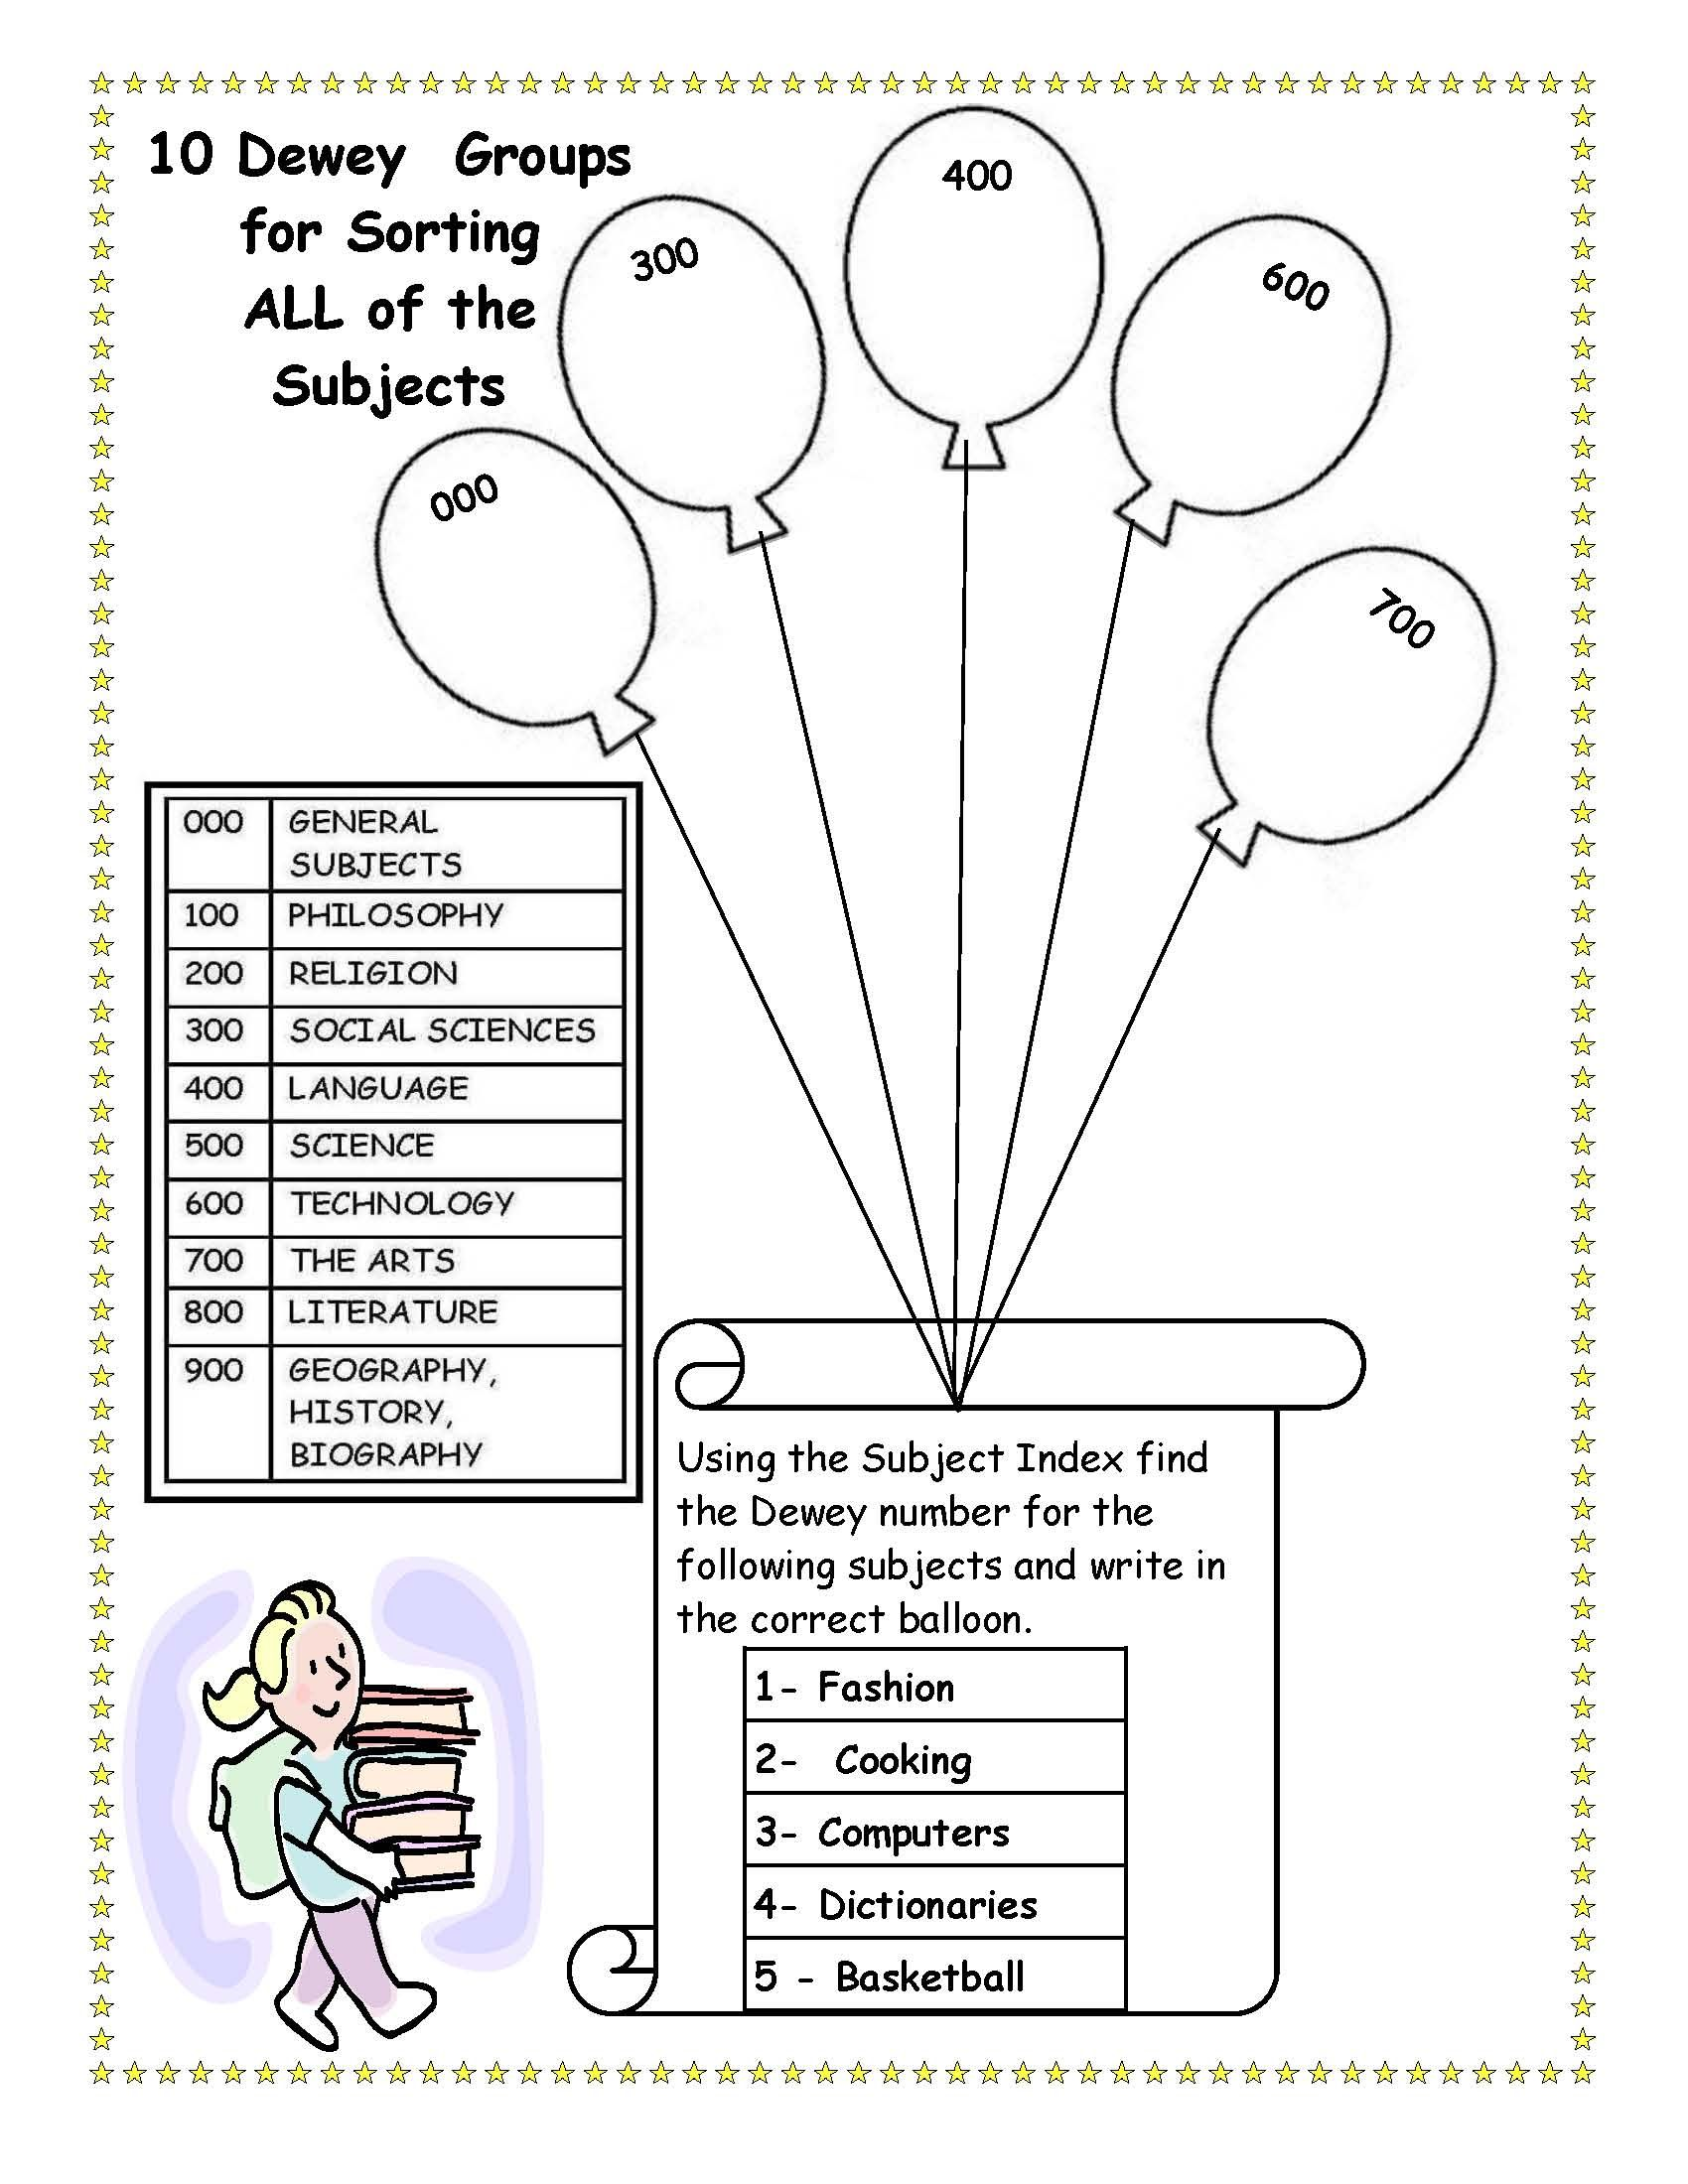 Free Worksheet Dewey Decimal System Worksheets 17 best images about dewey decimal system on pinterest classification word clouds and qr codes